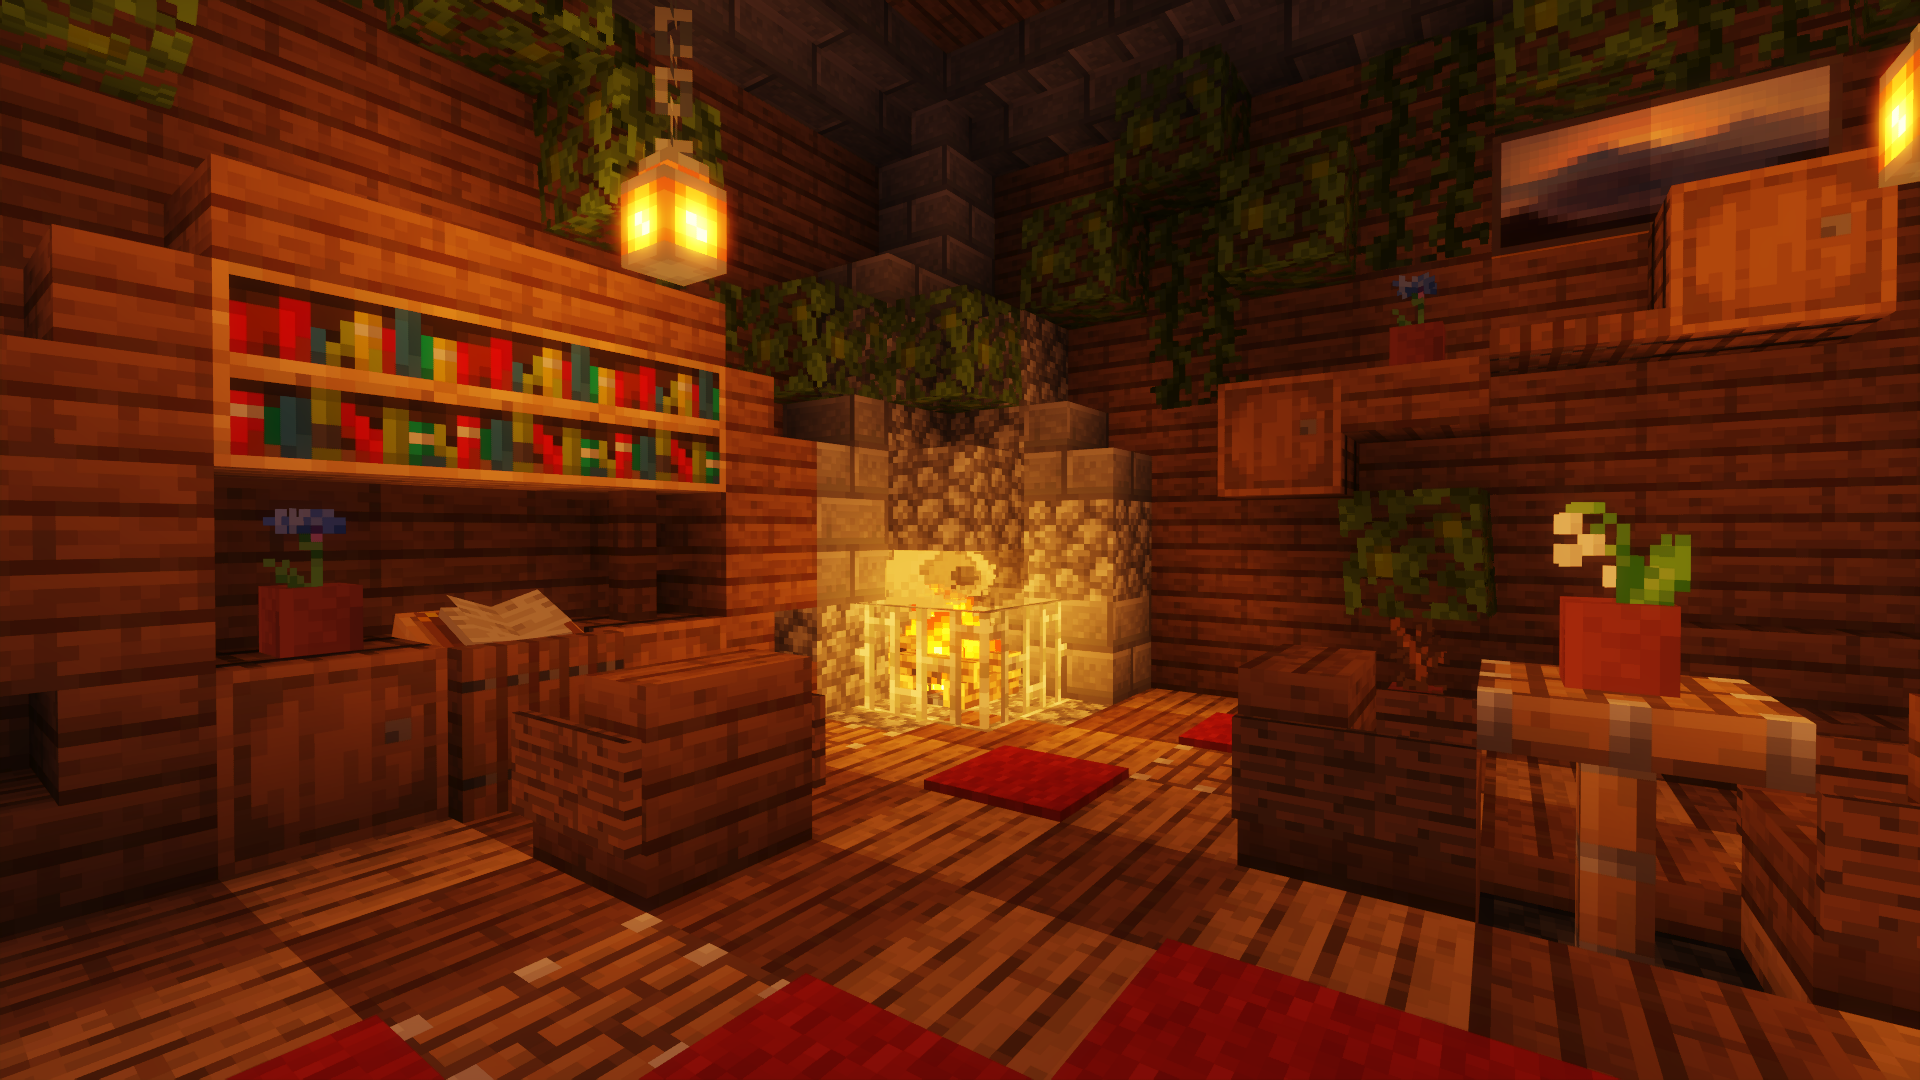 A cozy minecraft build featuring a book nook, fireplace, creative patterned flooring and lots of incorporated plants.